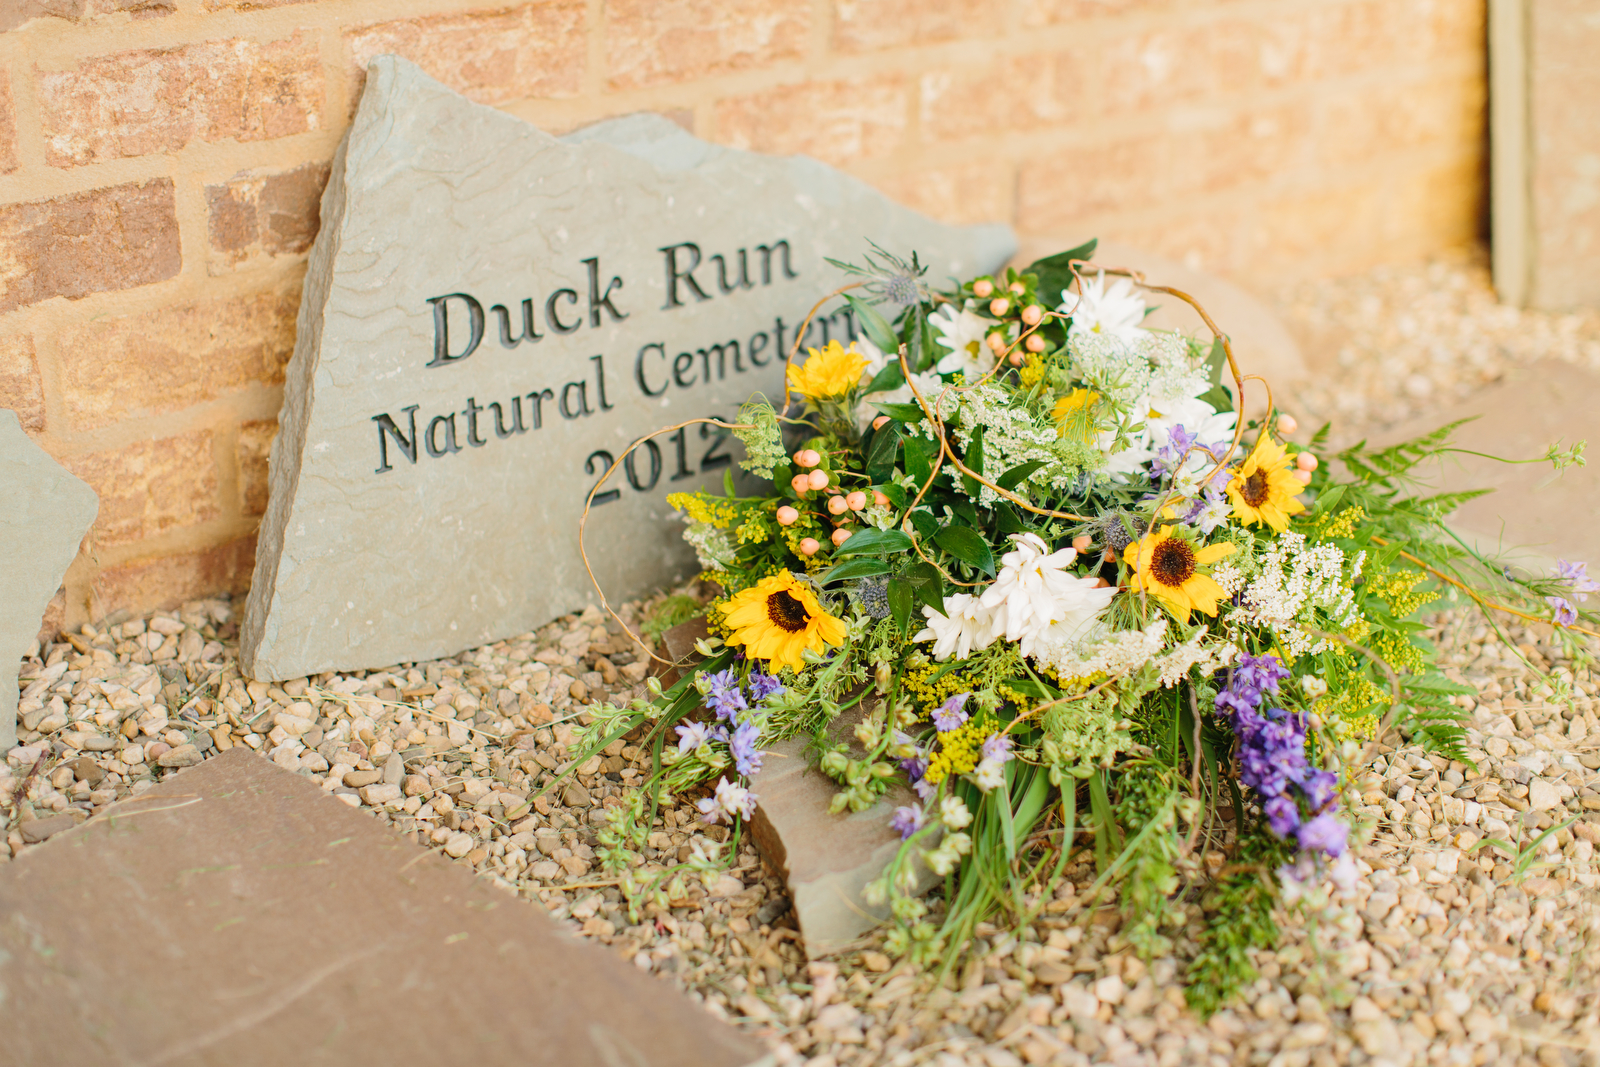 Photograph of flowers at the foot of a slab of stone that is engraved with the words Duck Run Natural Cemetery 2012